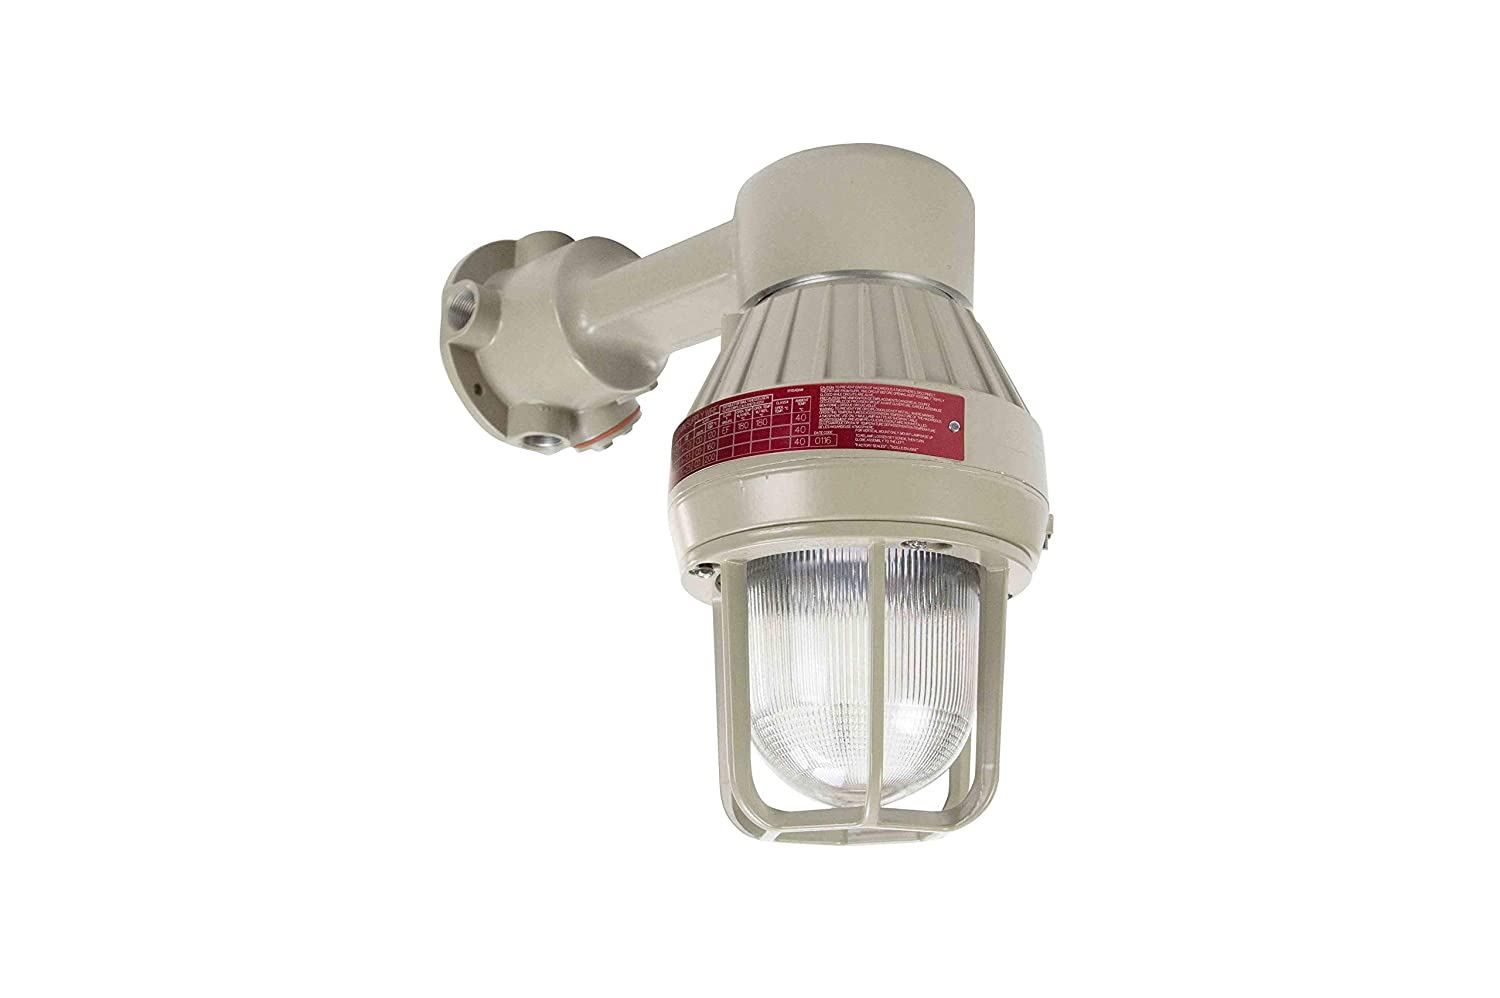 Larson electronics 1218oxootss class 1 division 1 explosion proof 300w high bay led light fixture with i beam mount paint booth 120 277v ac compact